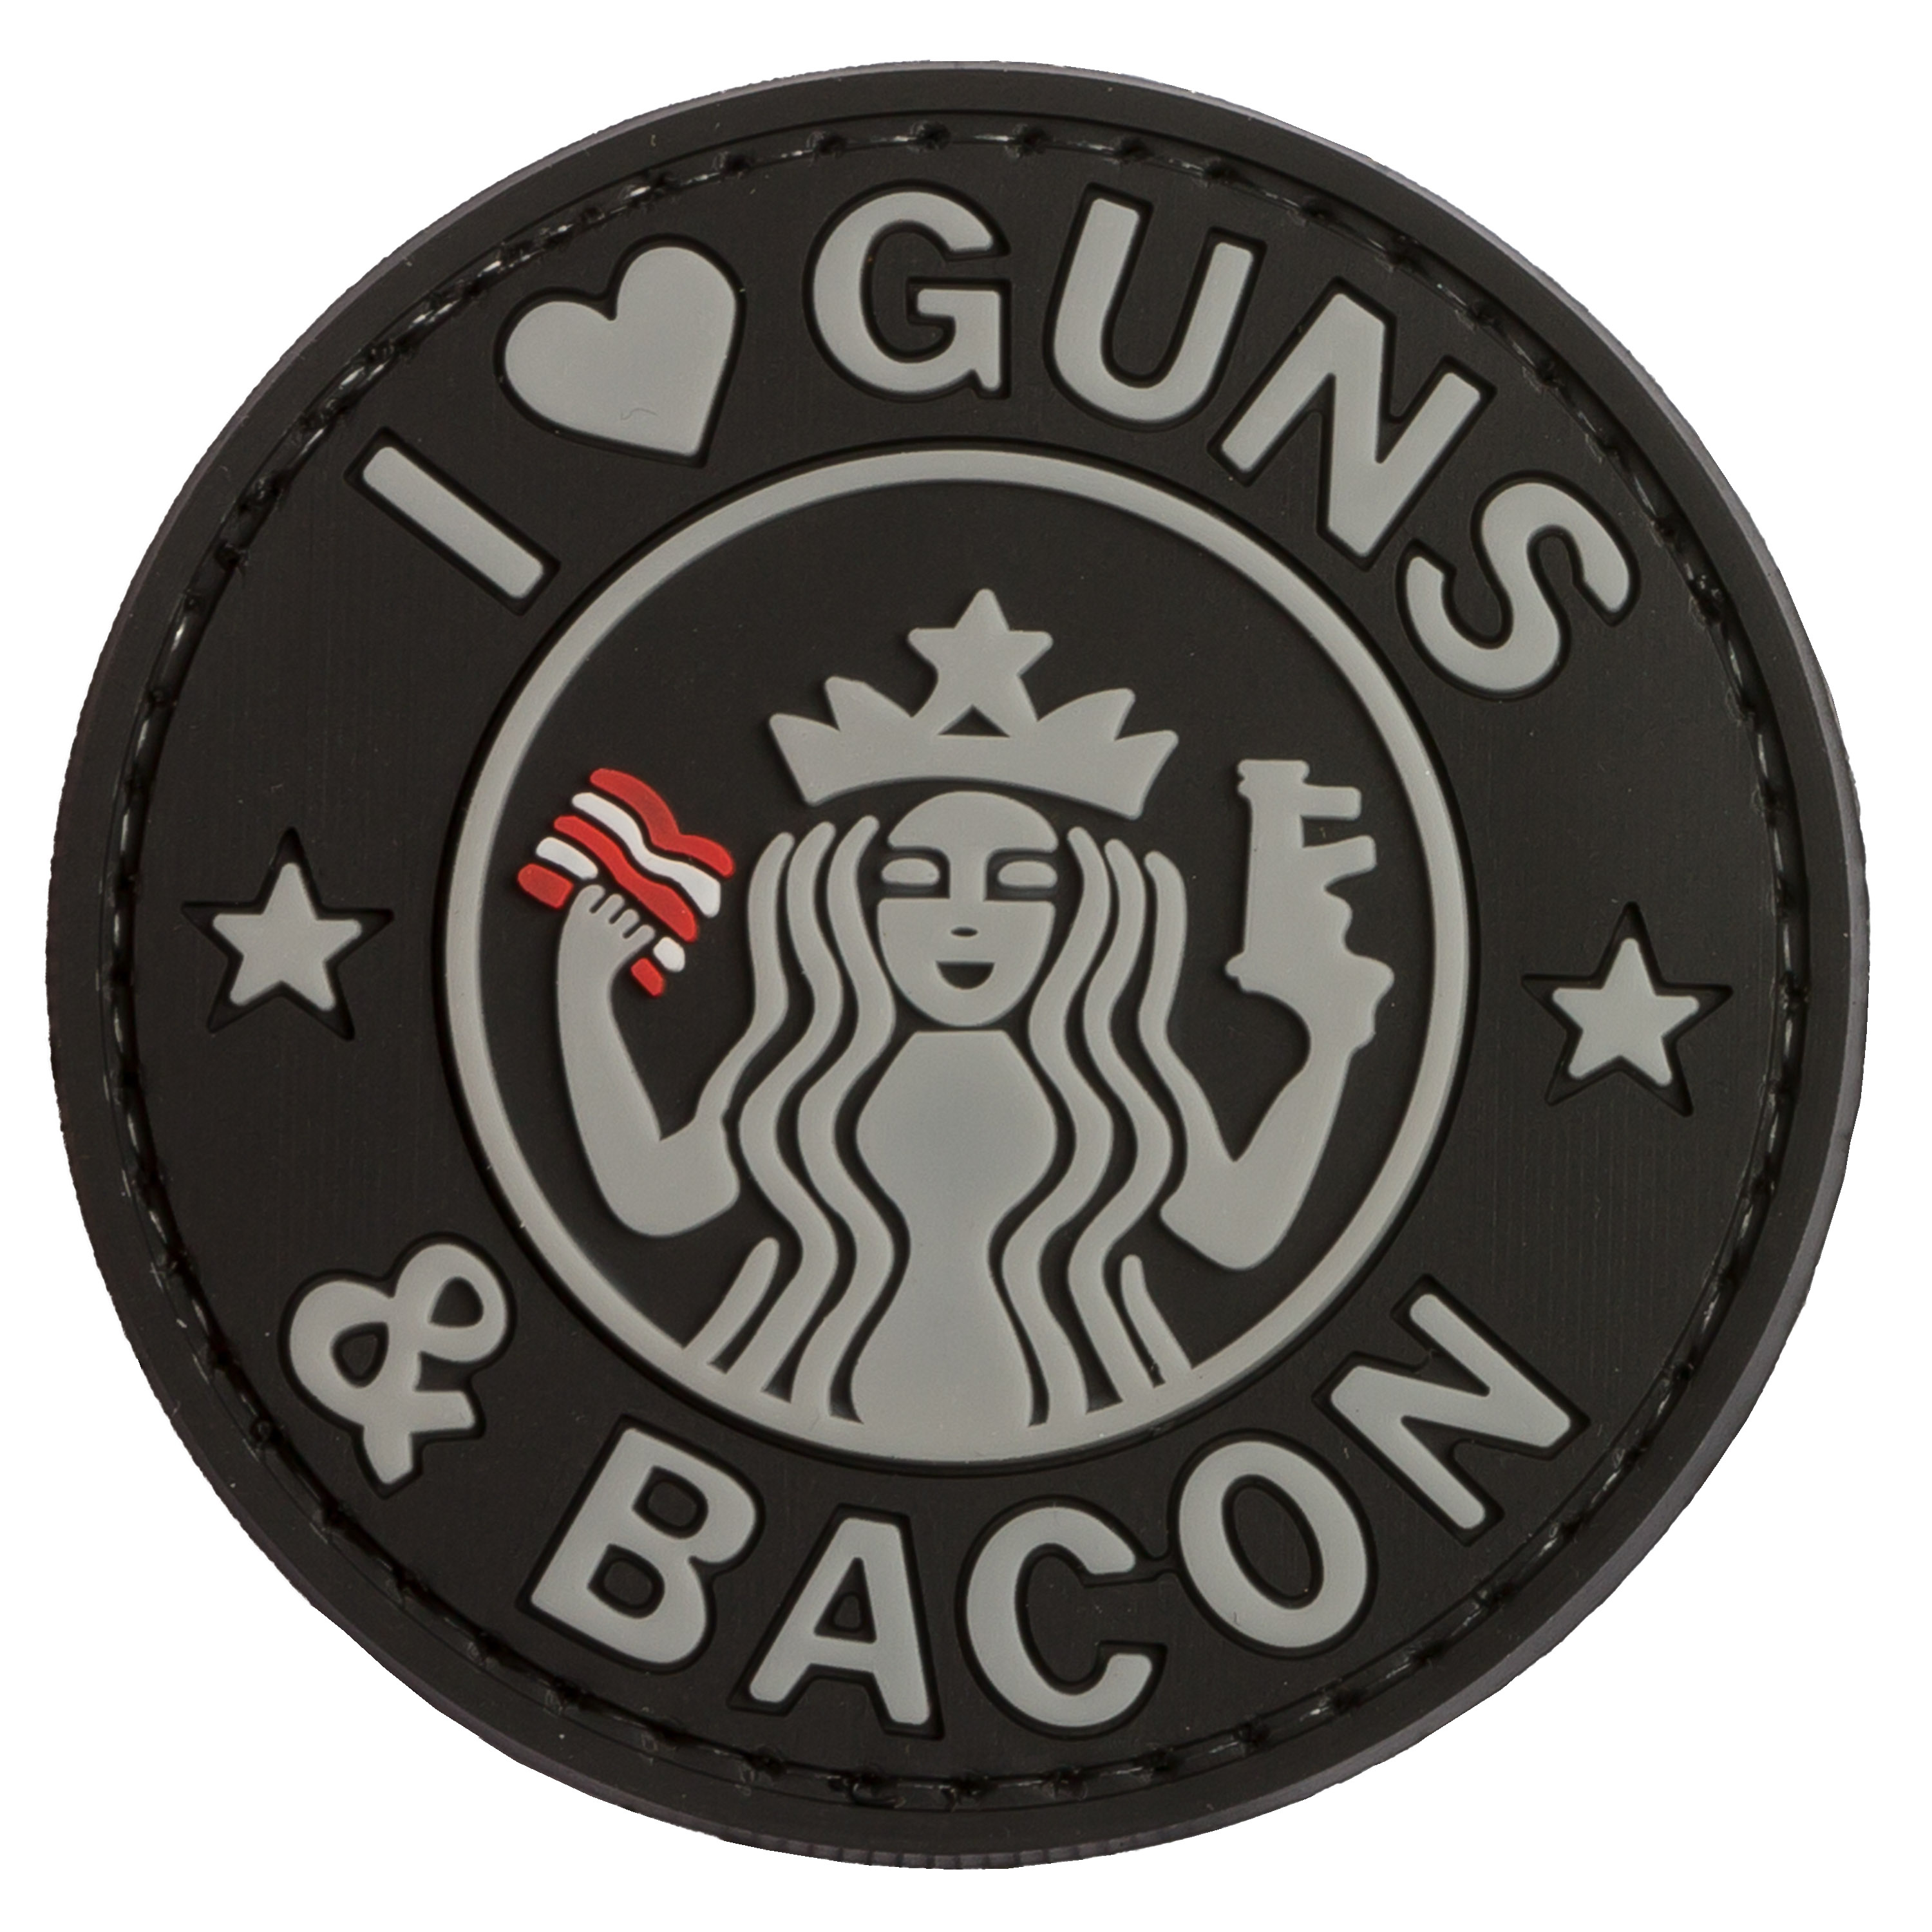 Patch 3D Guns and Bacon TAP swat